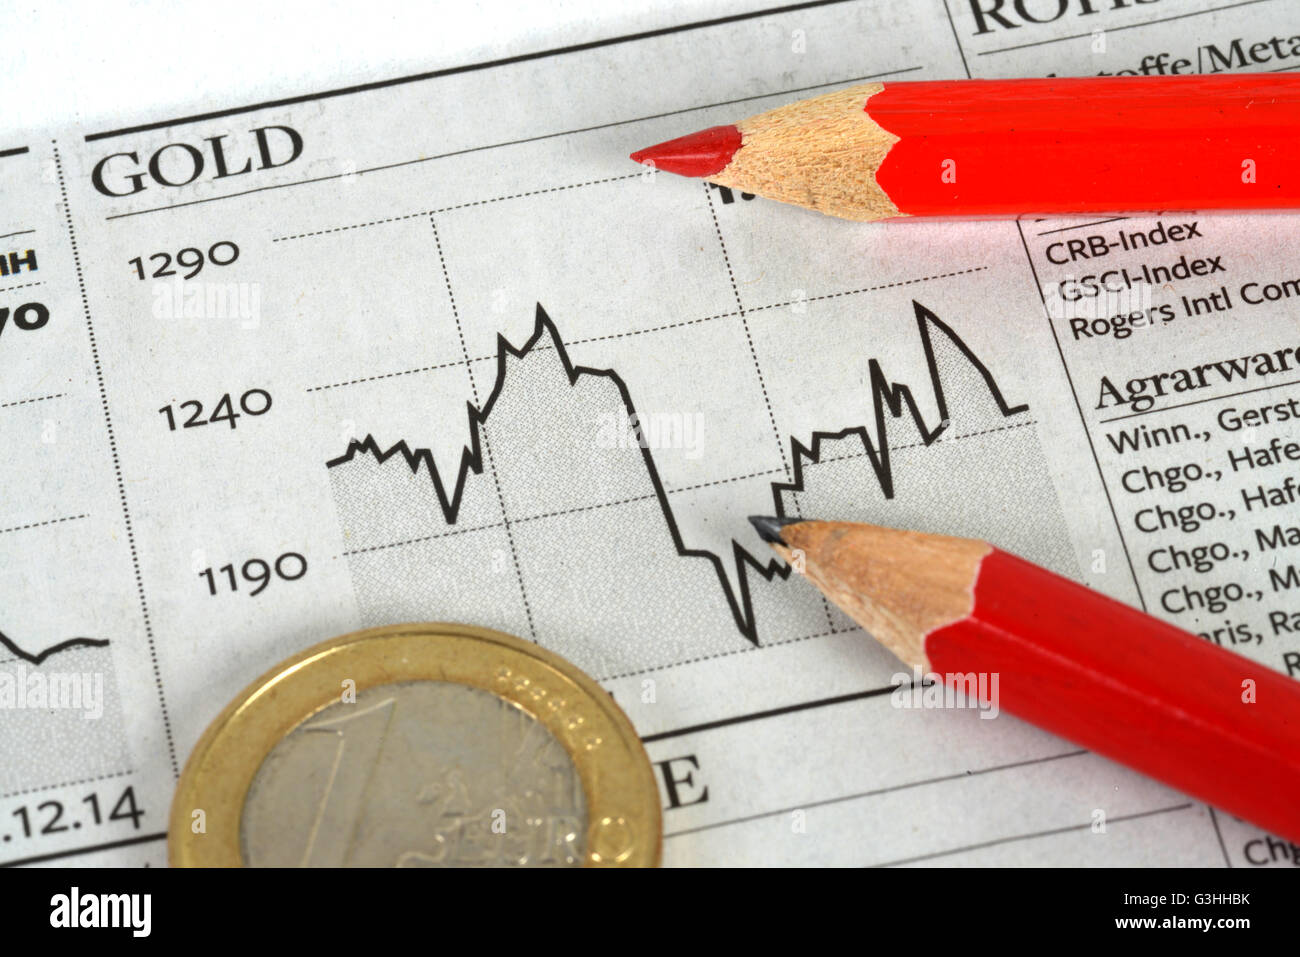 Noble Metals Stock Photos Amp Noble Metals Stock Images Alamy